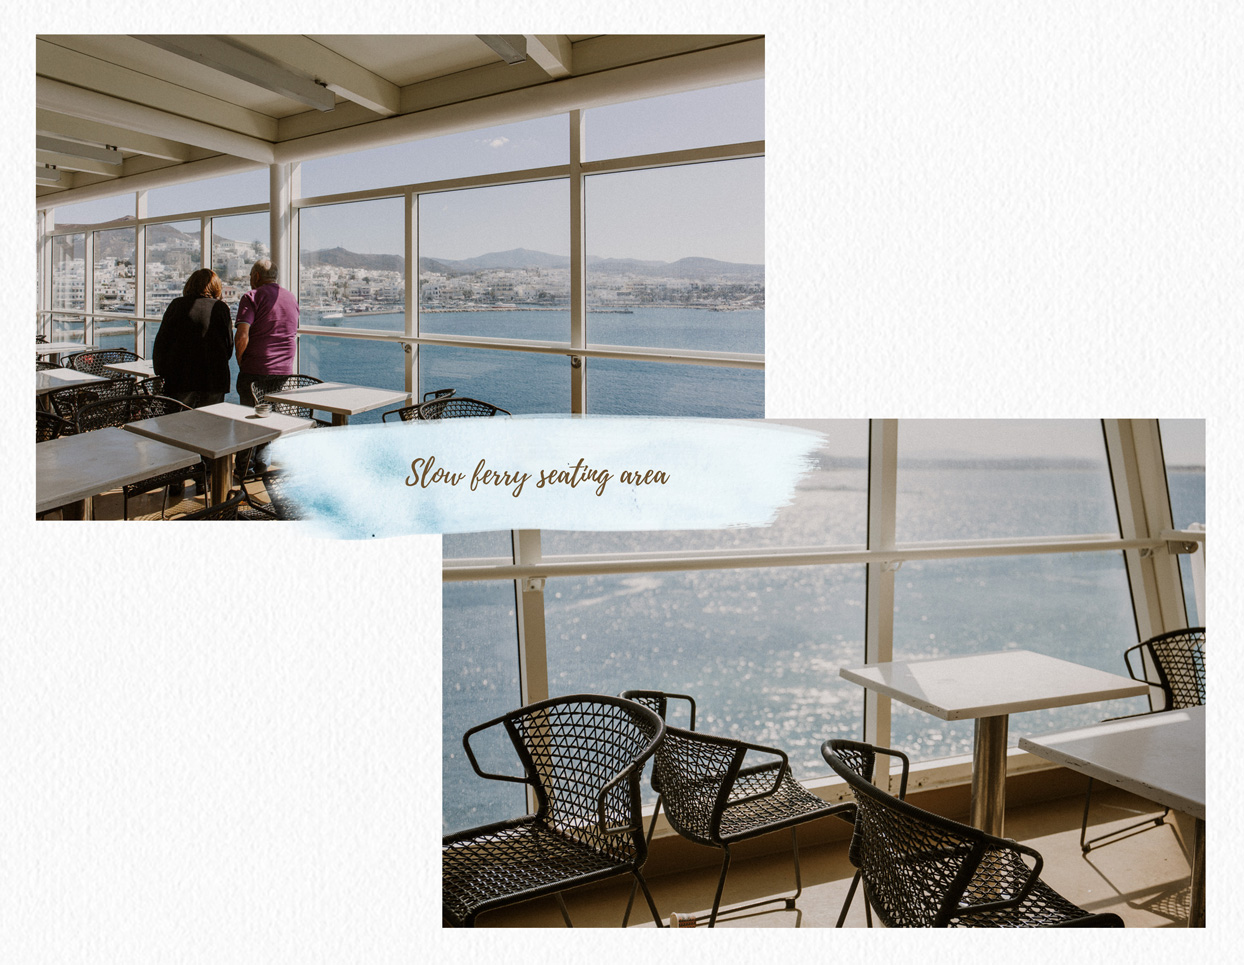 Santorini slow ferry seating area